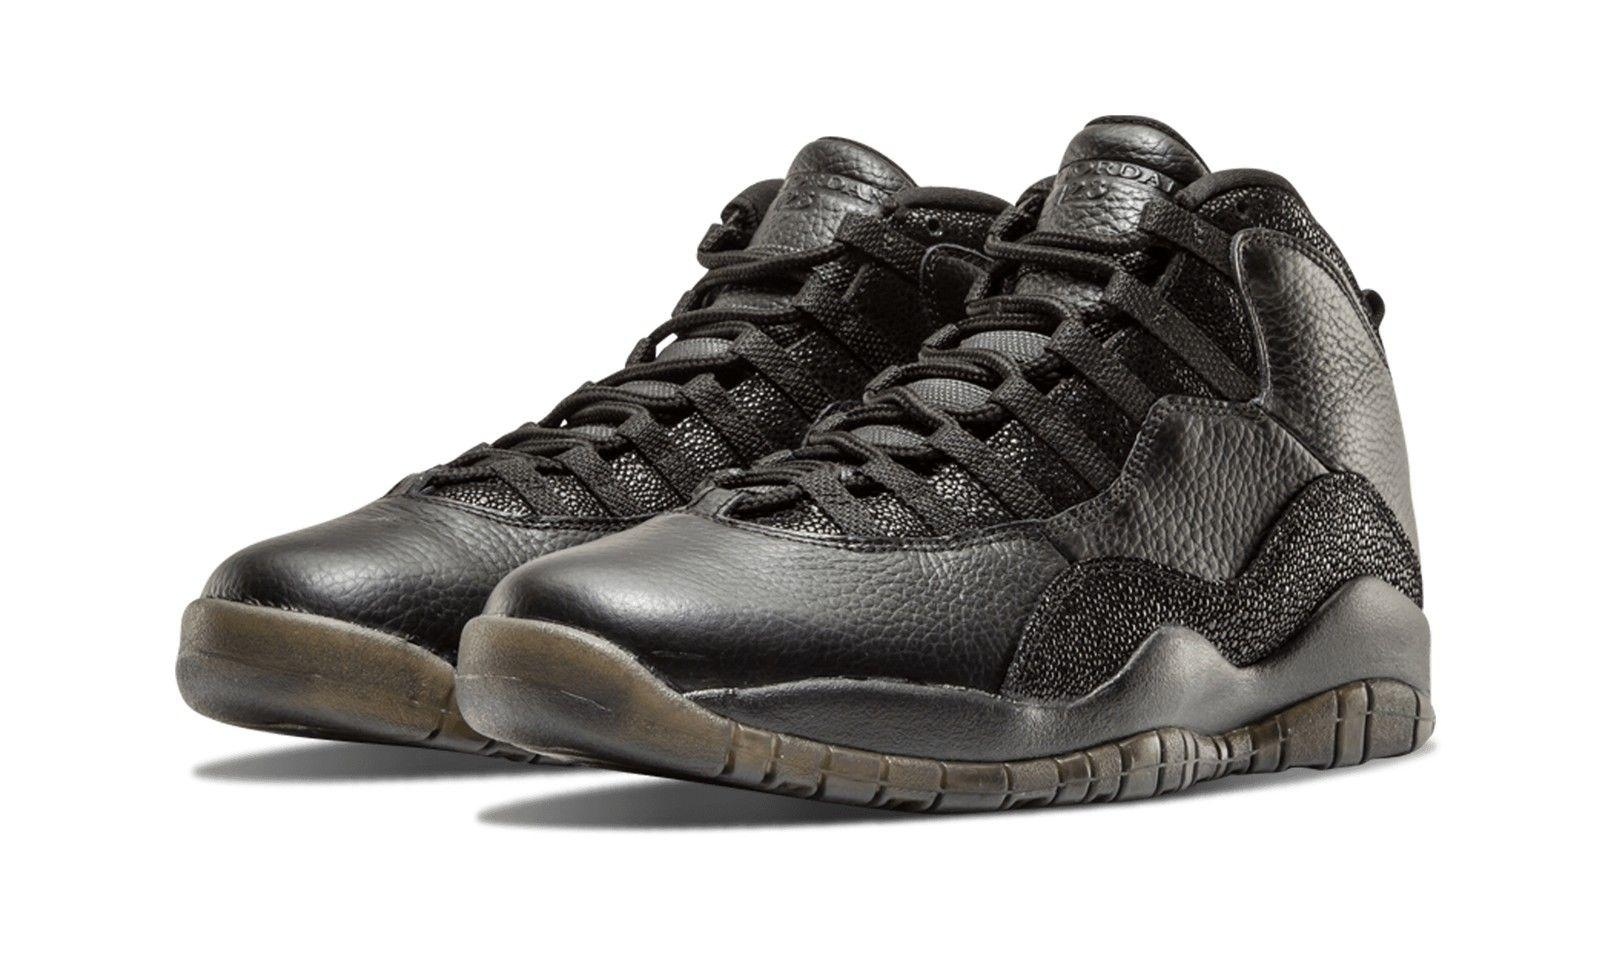 DRAKE x AIR JORDAN 10 RETRO OVO BLACK(819955-030)